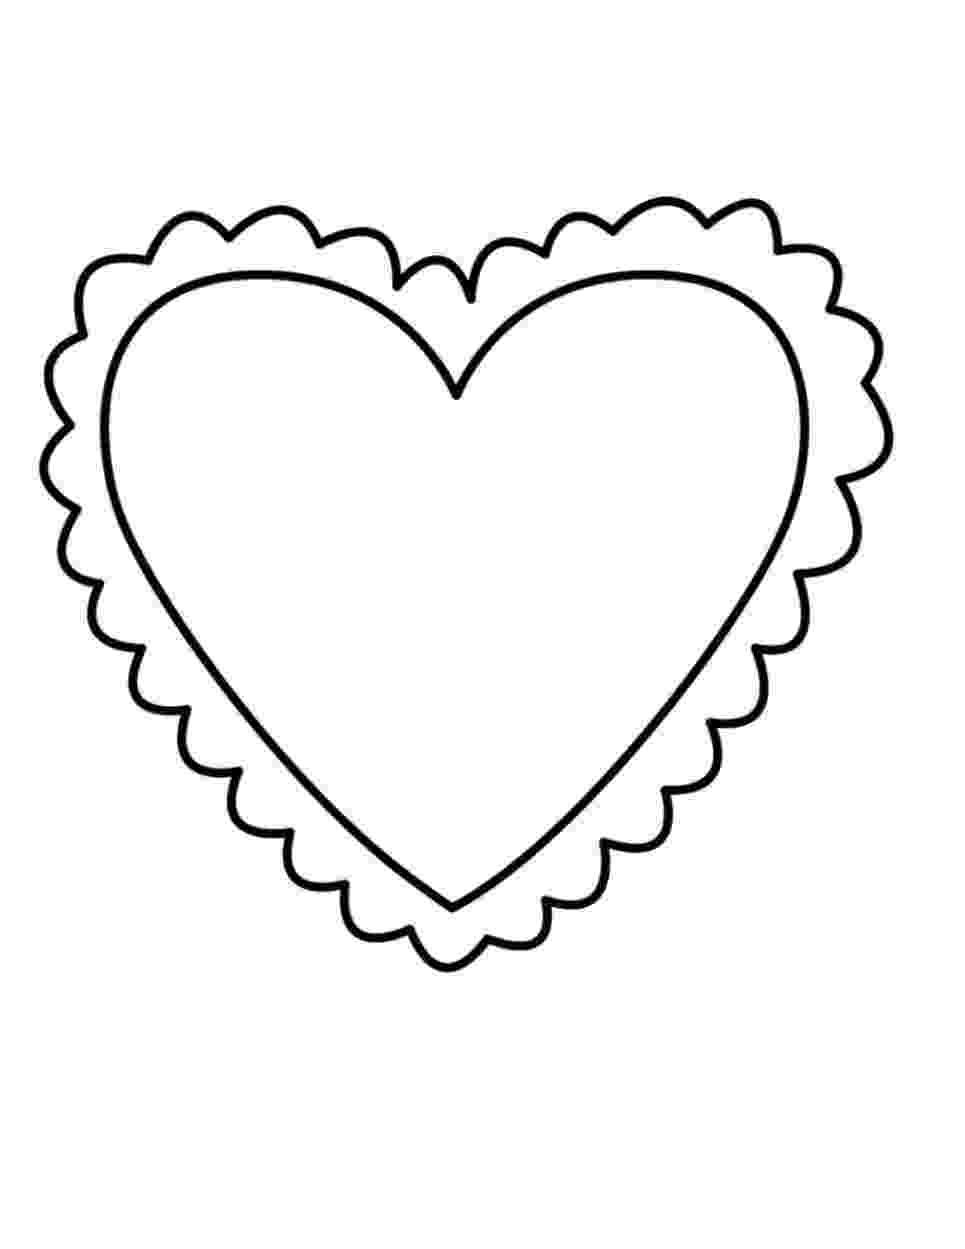 valentine hearts coloring pages valentine heart coloring pages best coloring pages for kids coloring hearts pages valentine